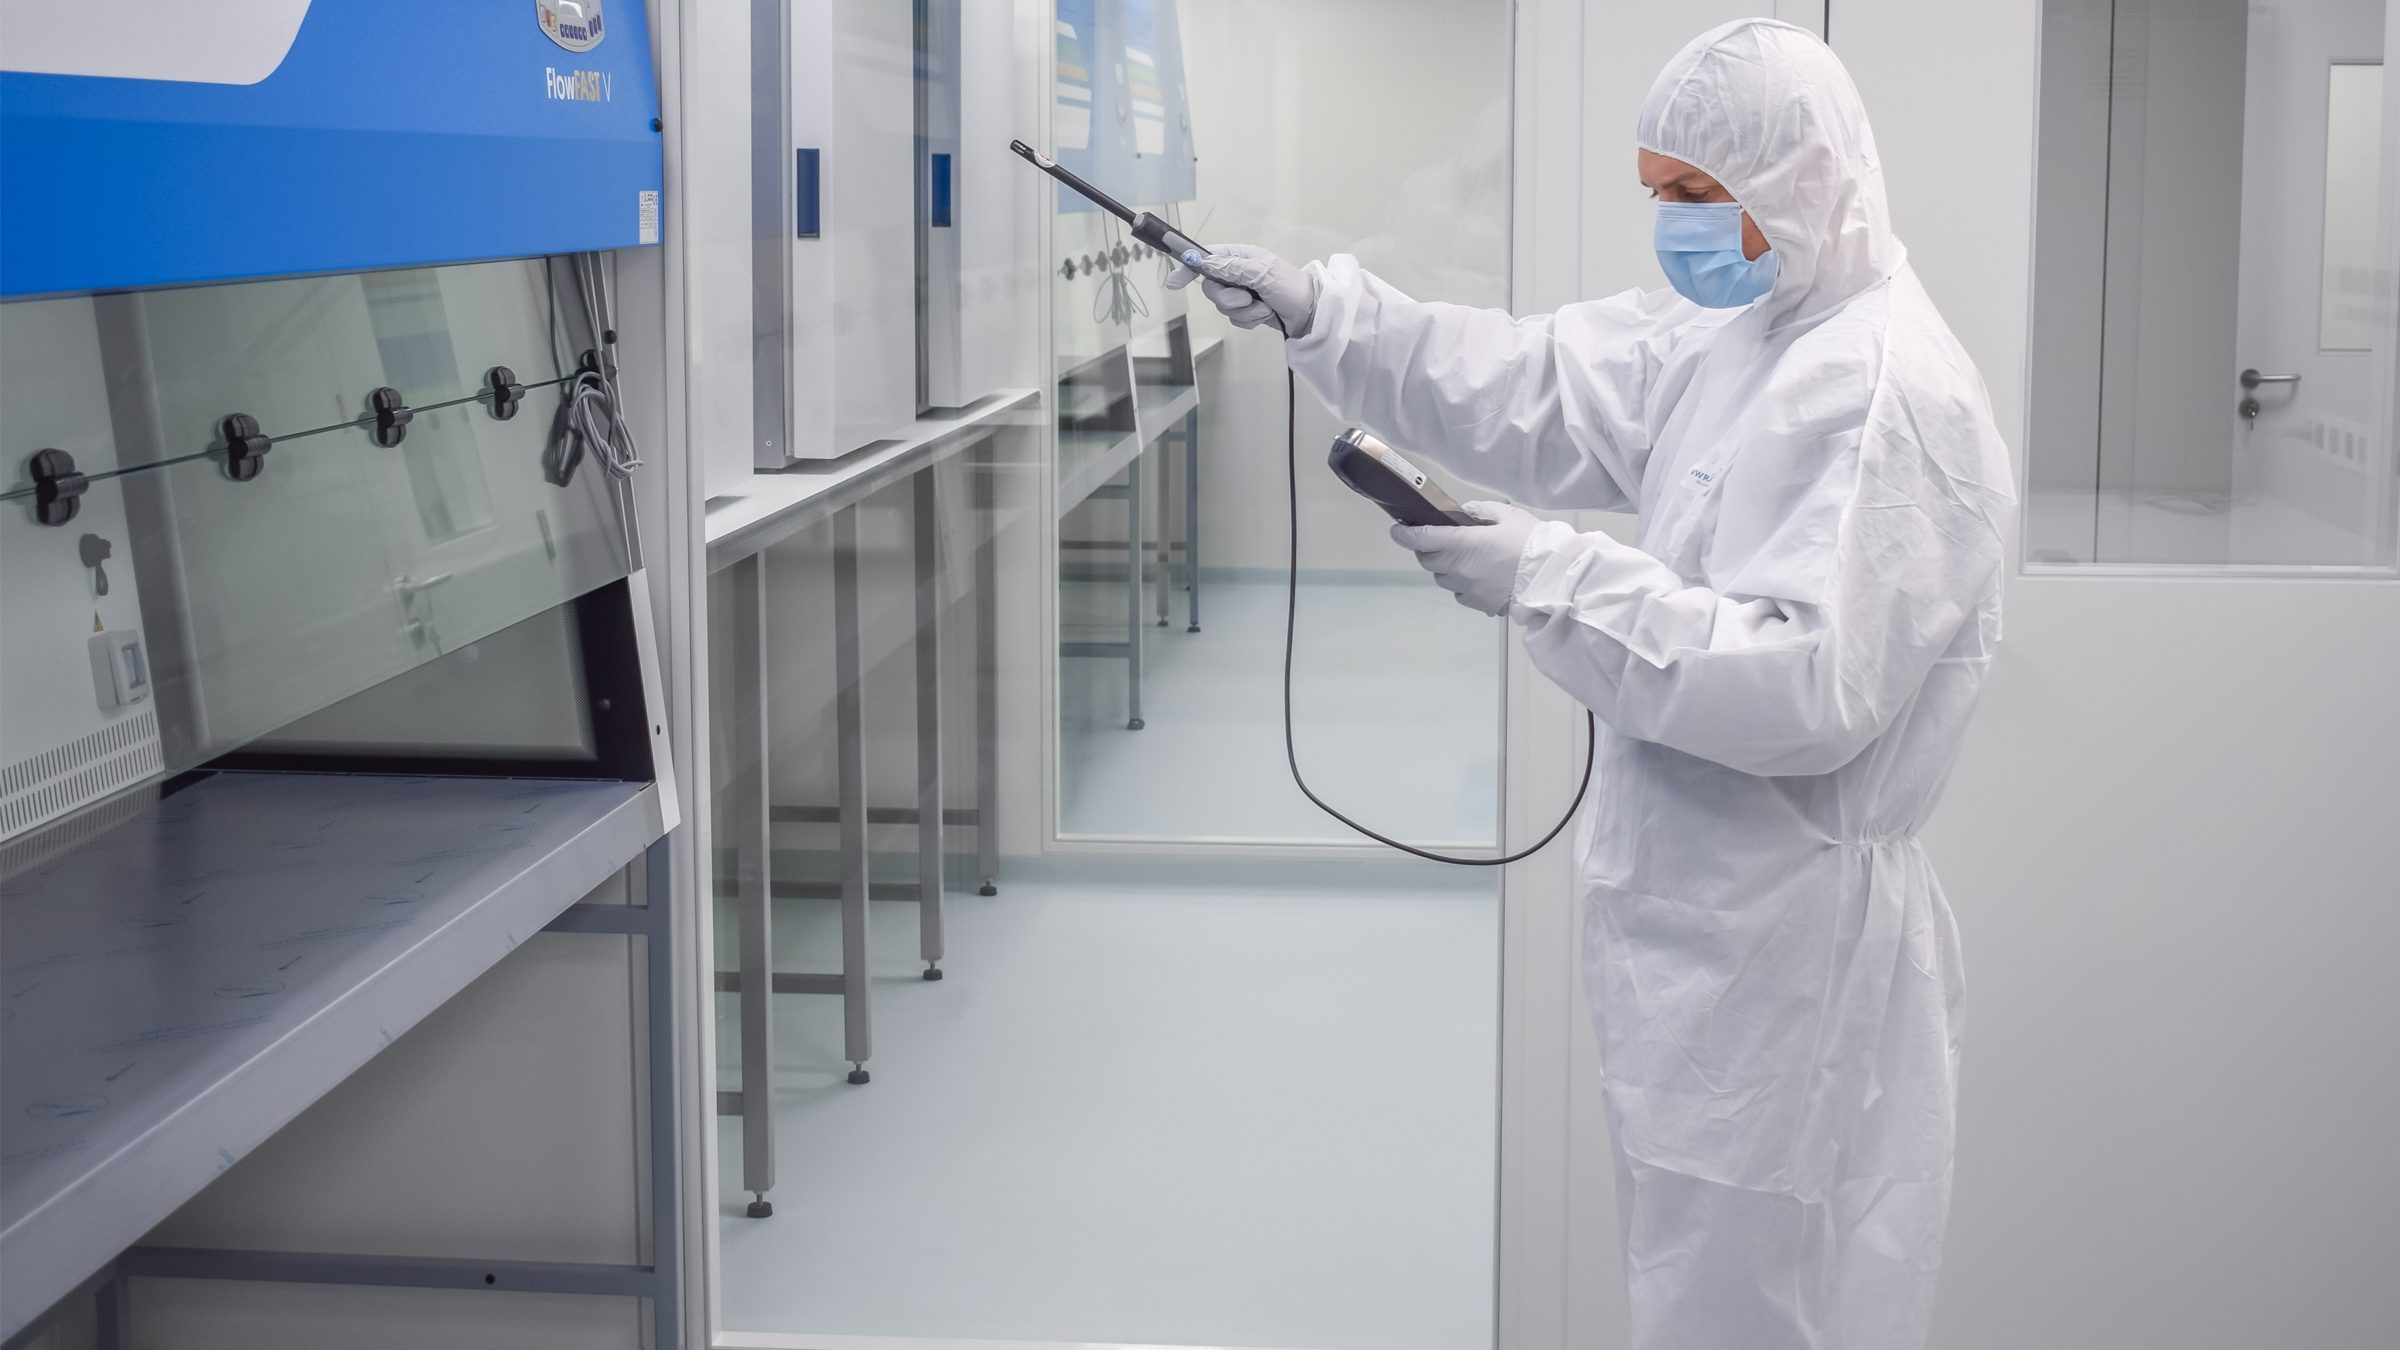 Cleanroom validation activities 2400x1350px